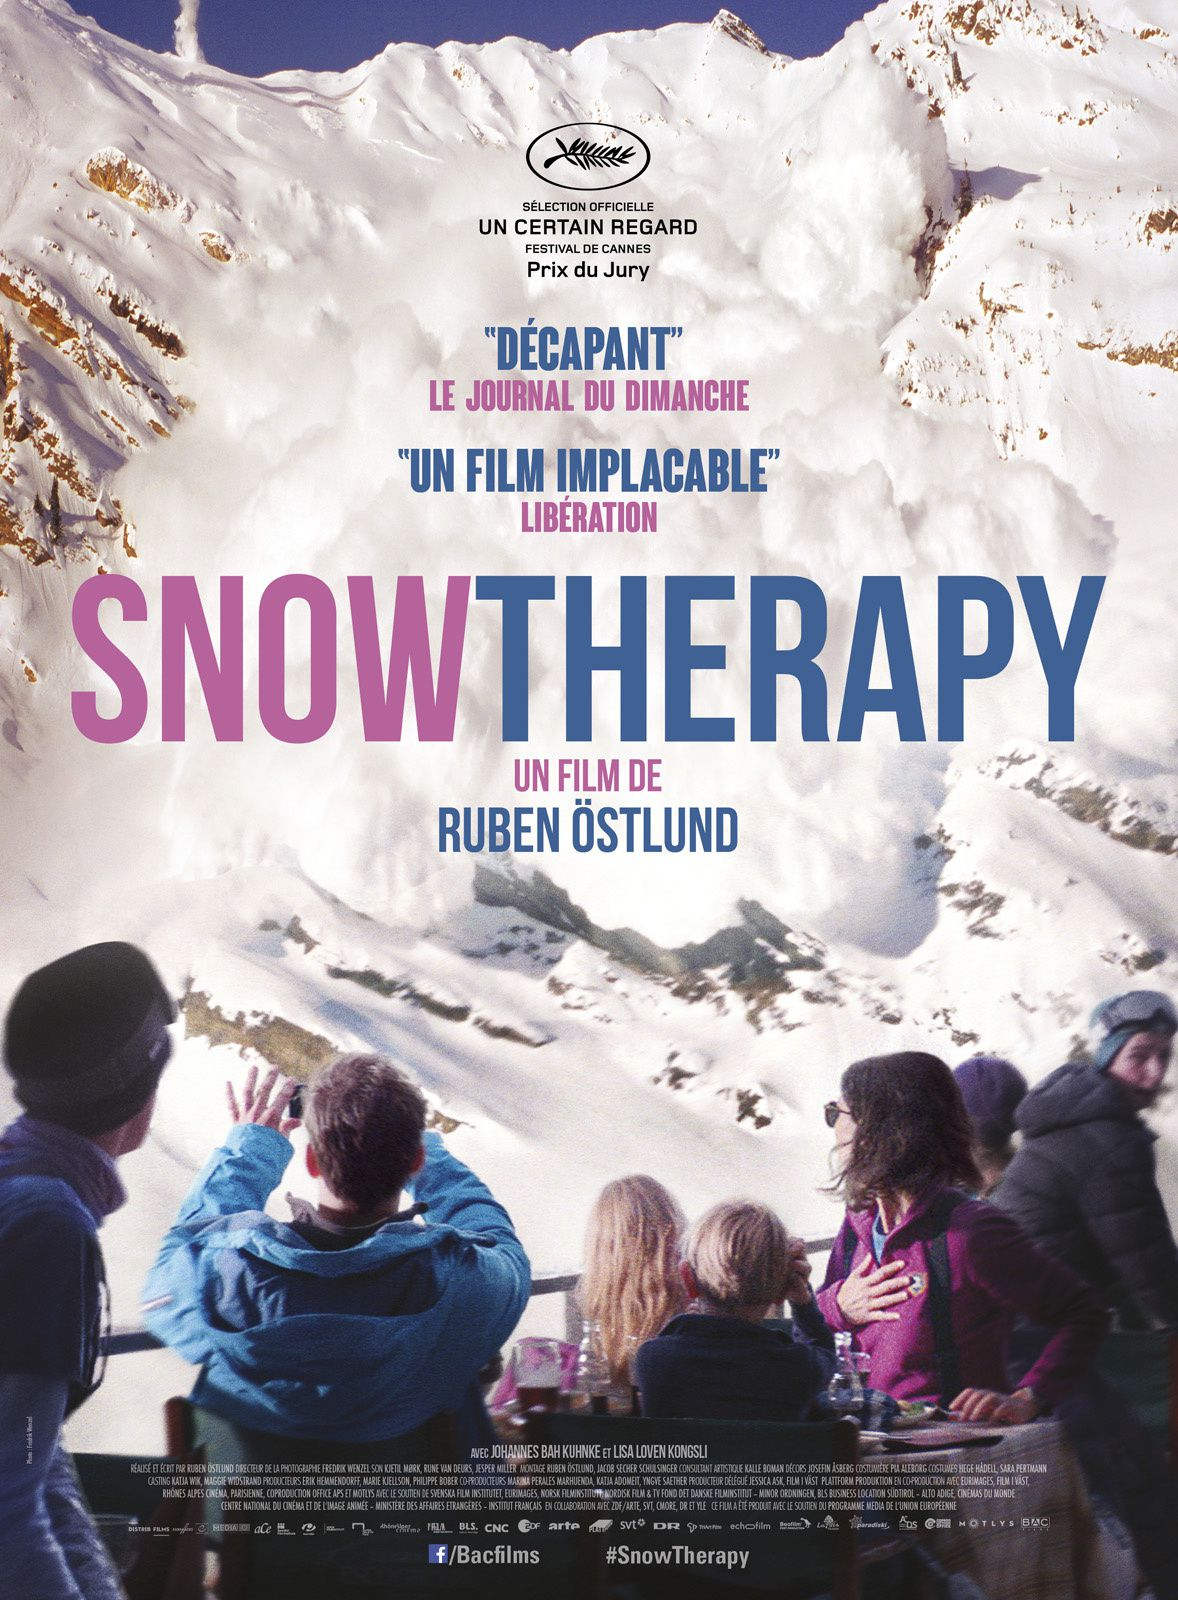 SNOW THERAPY / CINEMA / Ruben Östlund